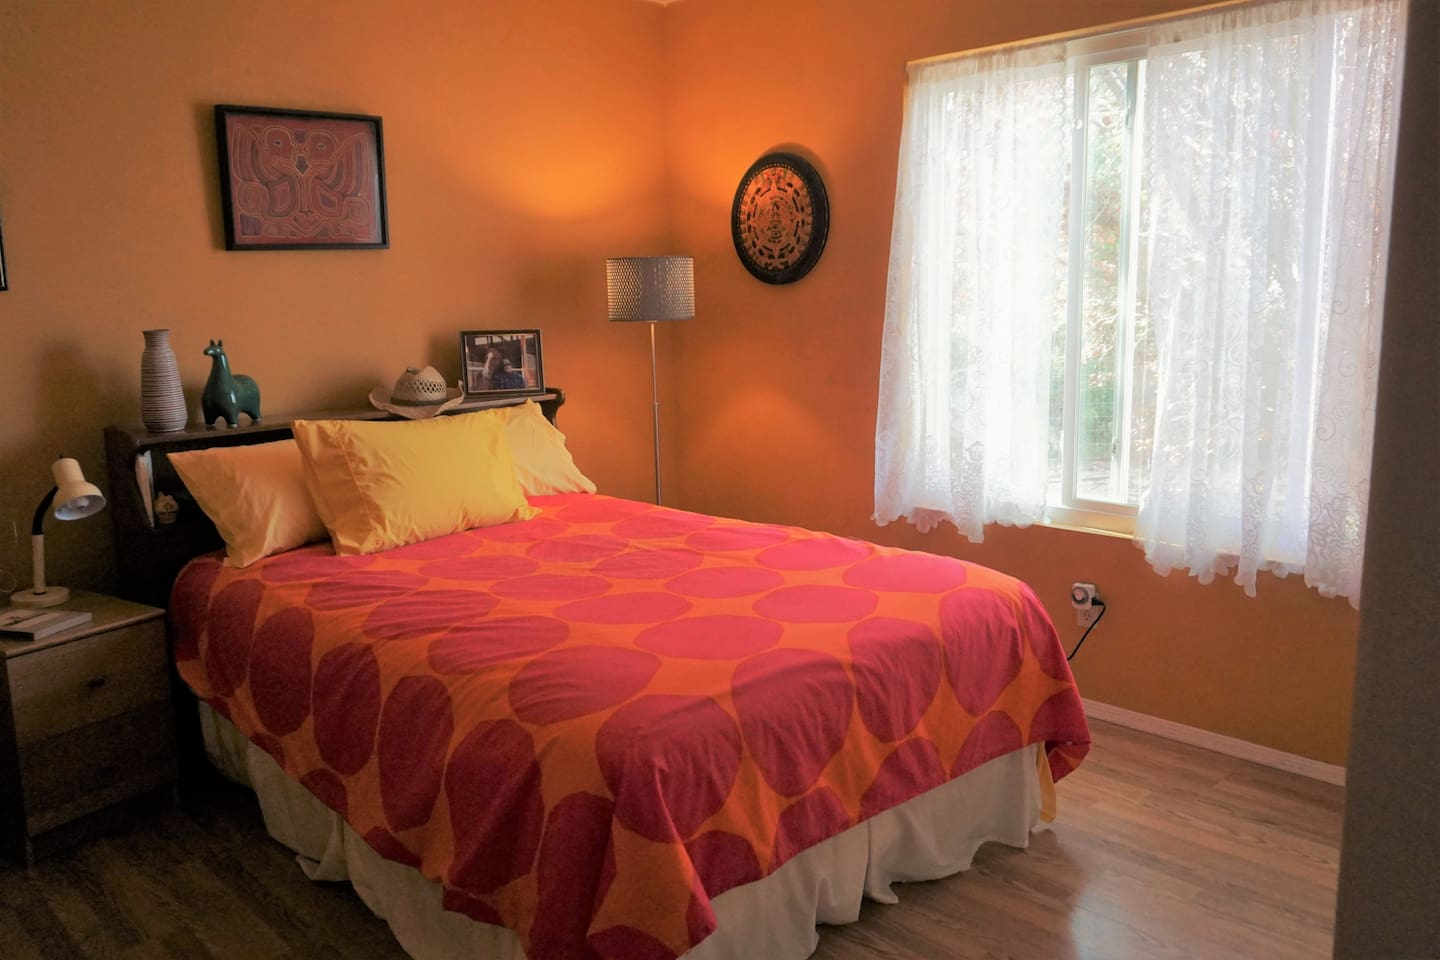 The bright, south-facing Yellow Room has a firm, full-sized bed and shelving in the closet